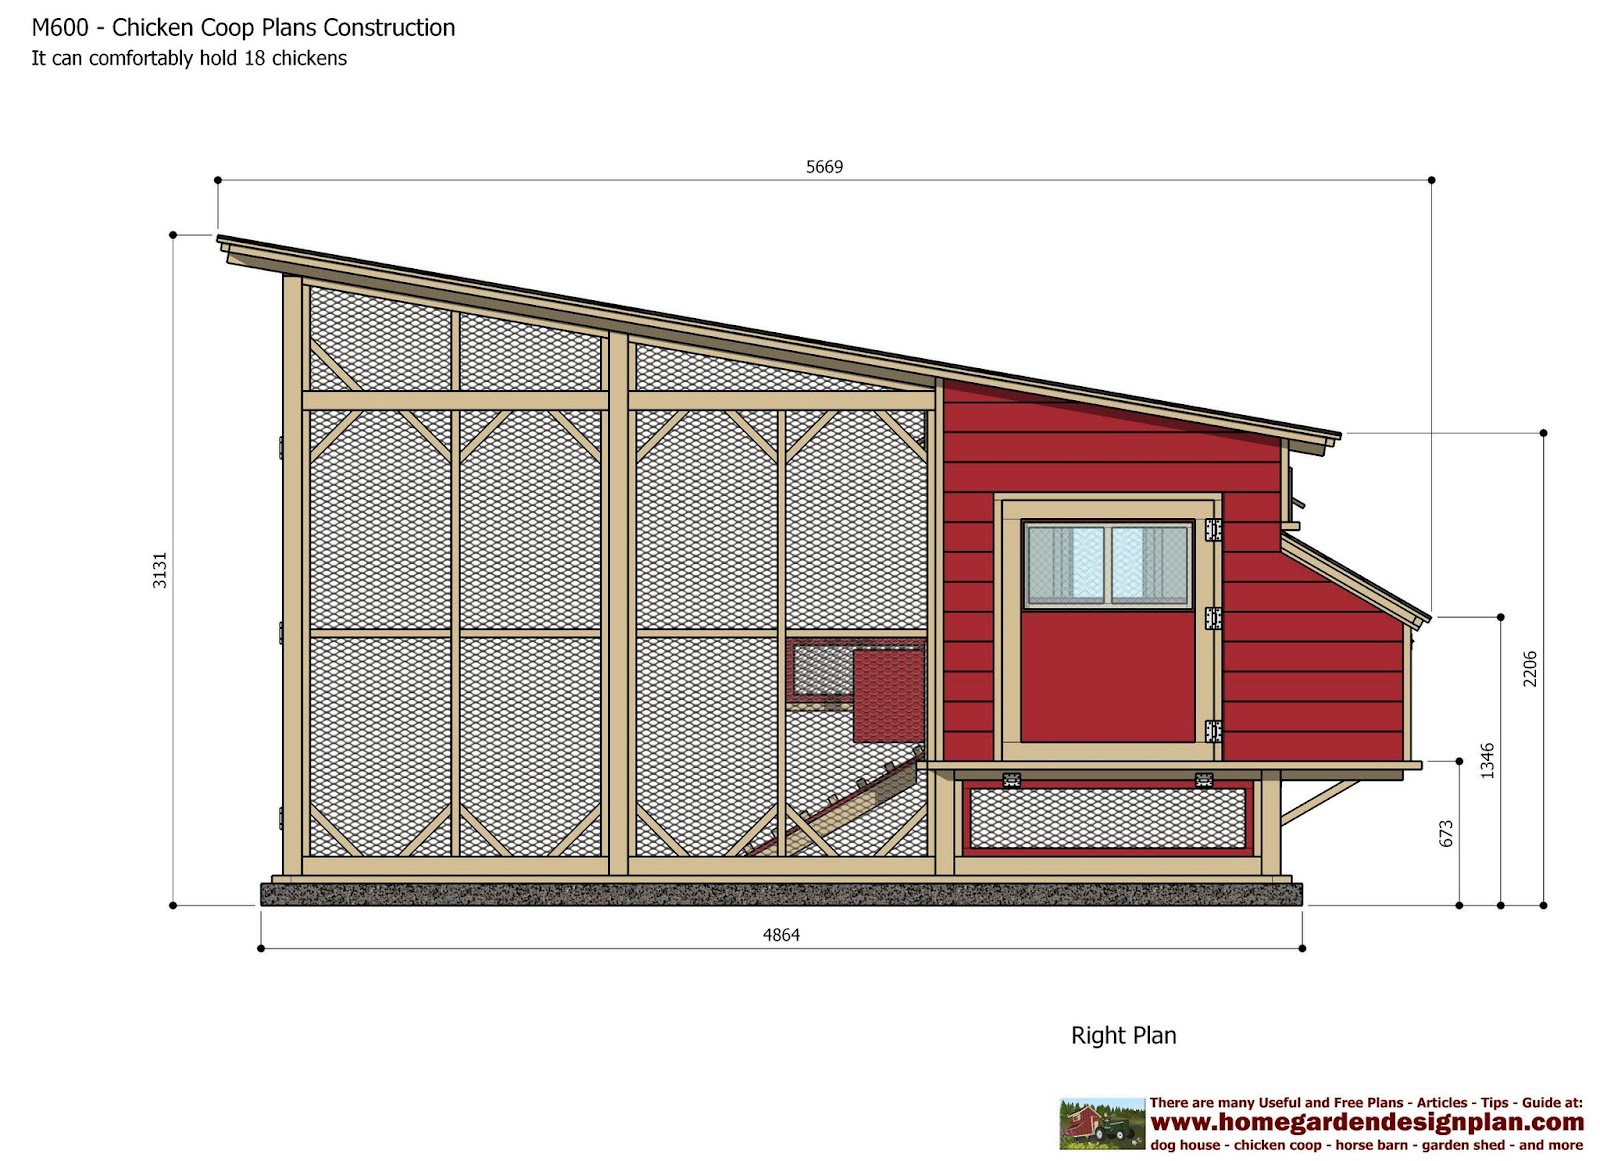 Home garden plans m600 chicken coop plans construction for Plans chicken coop